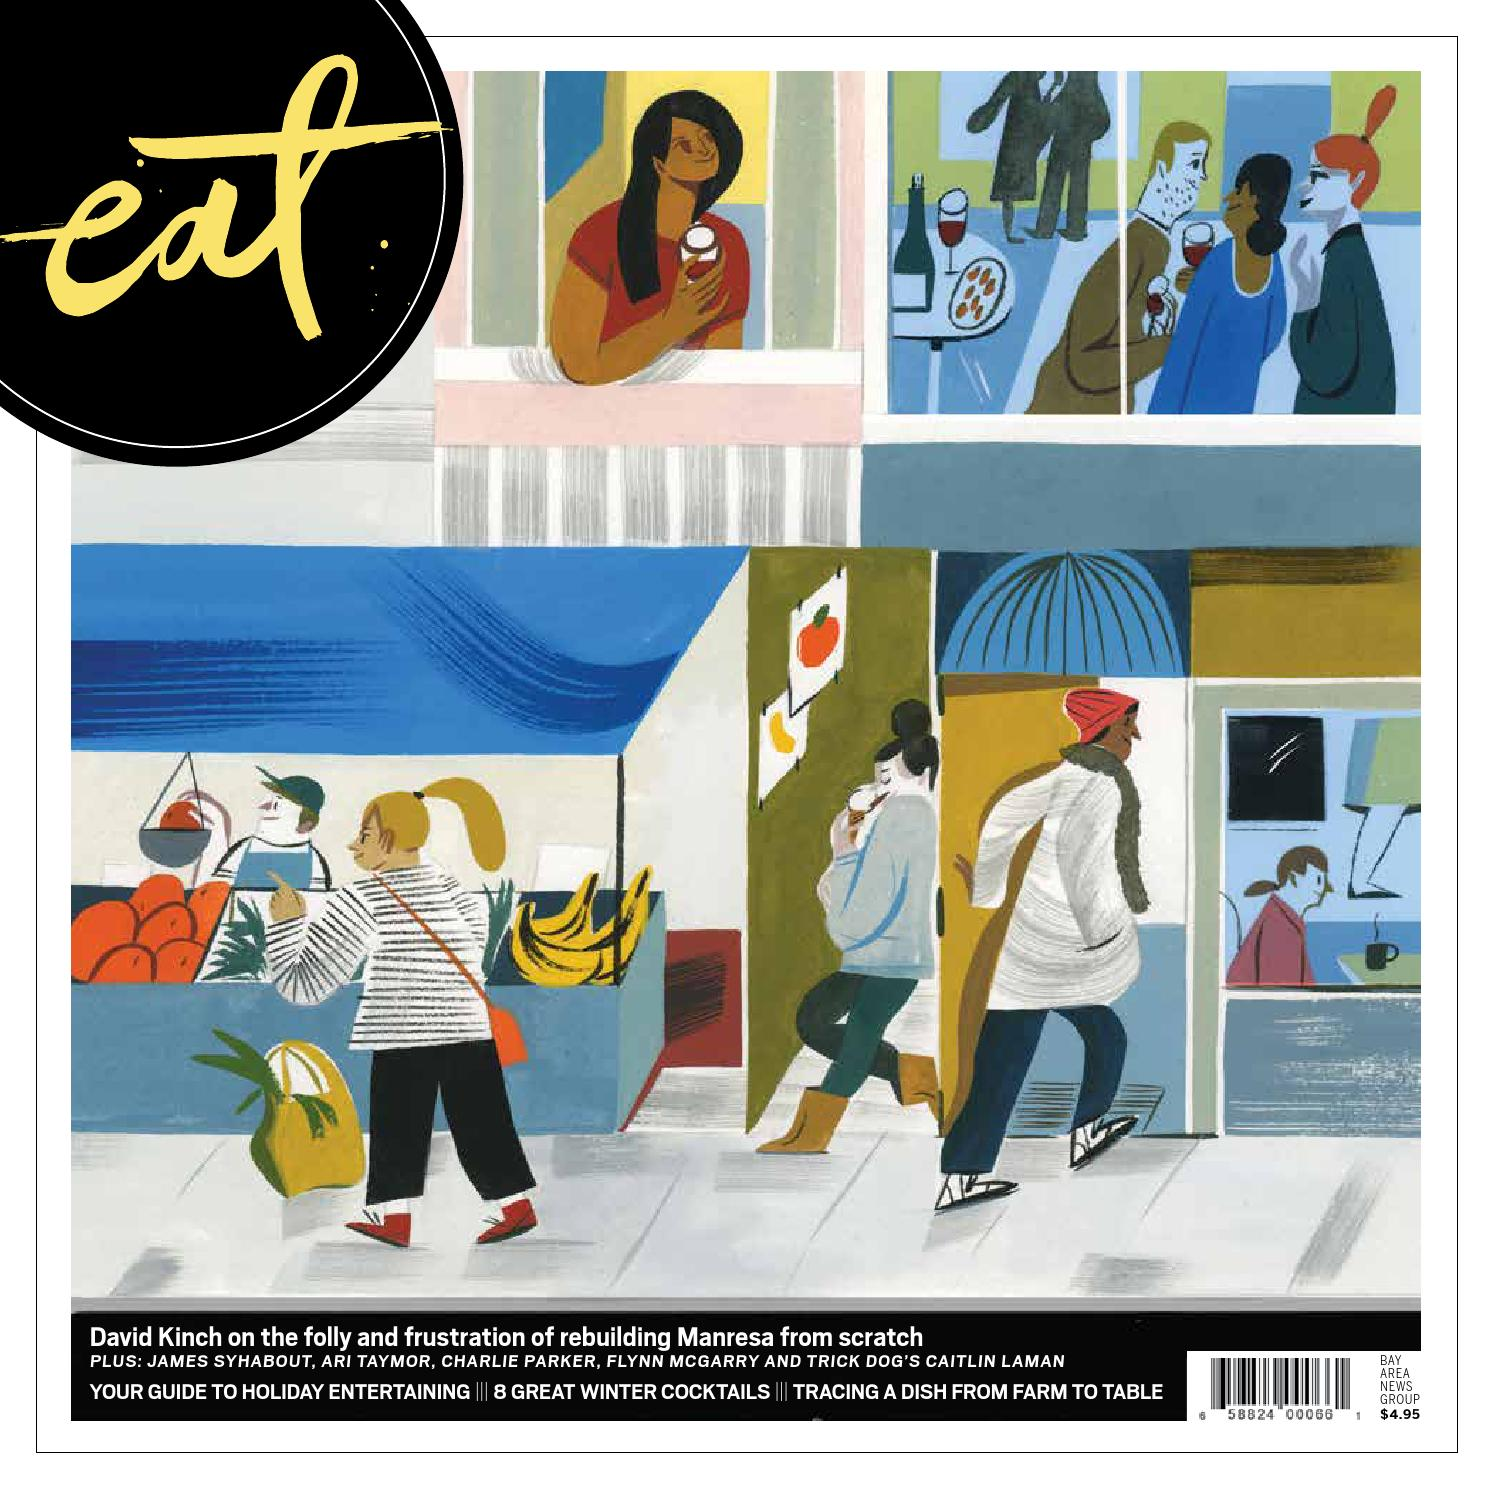 Eat Magazine By Tim Ball Issuu Group Shop Cheap From China Suppliers At Alwaysbetter On